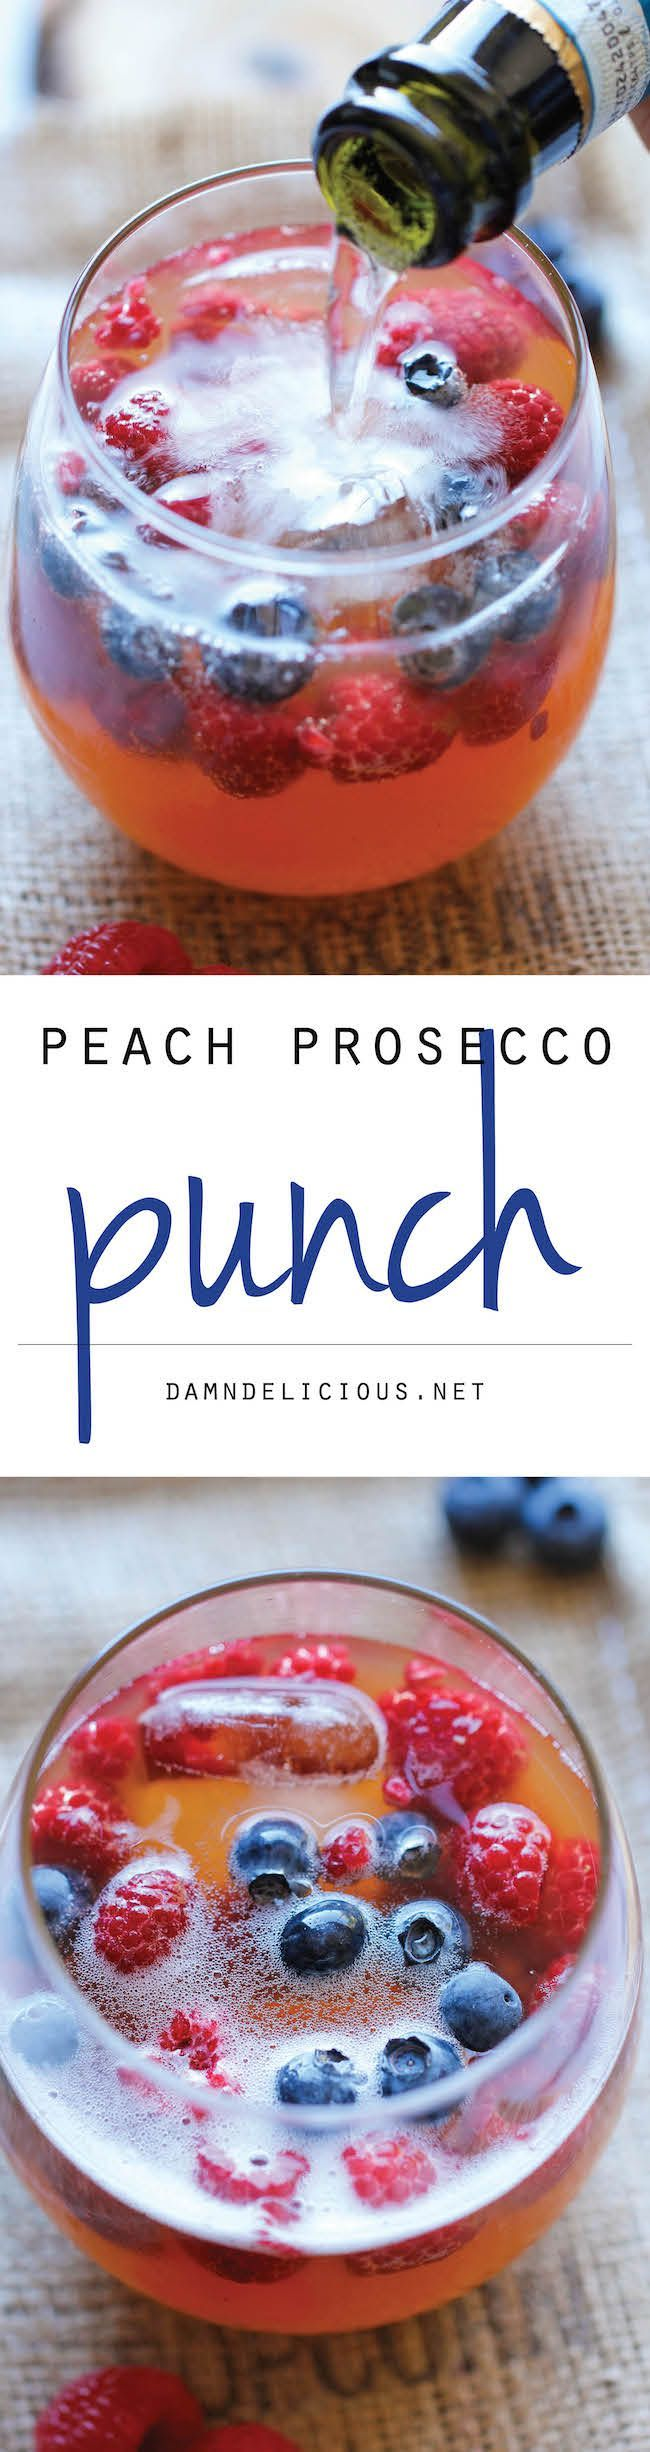 Peach Prosecco Punch - An incredibly refreshing, bubbly party punch made with…